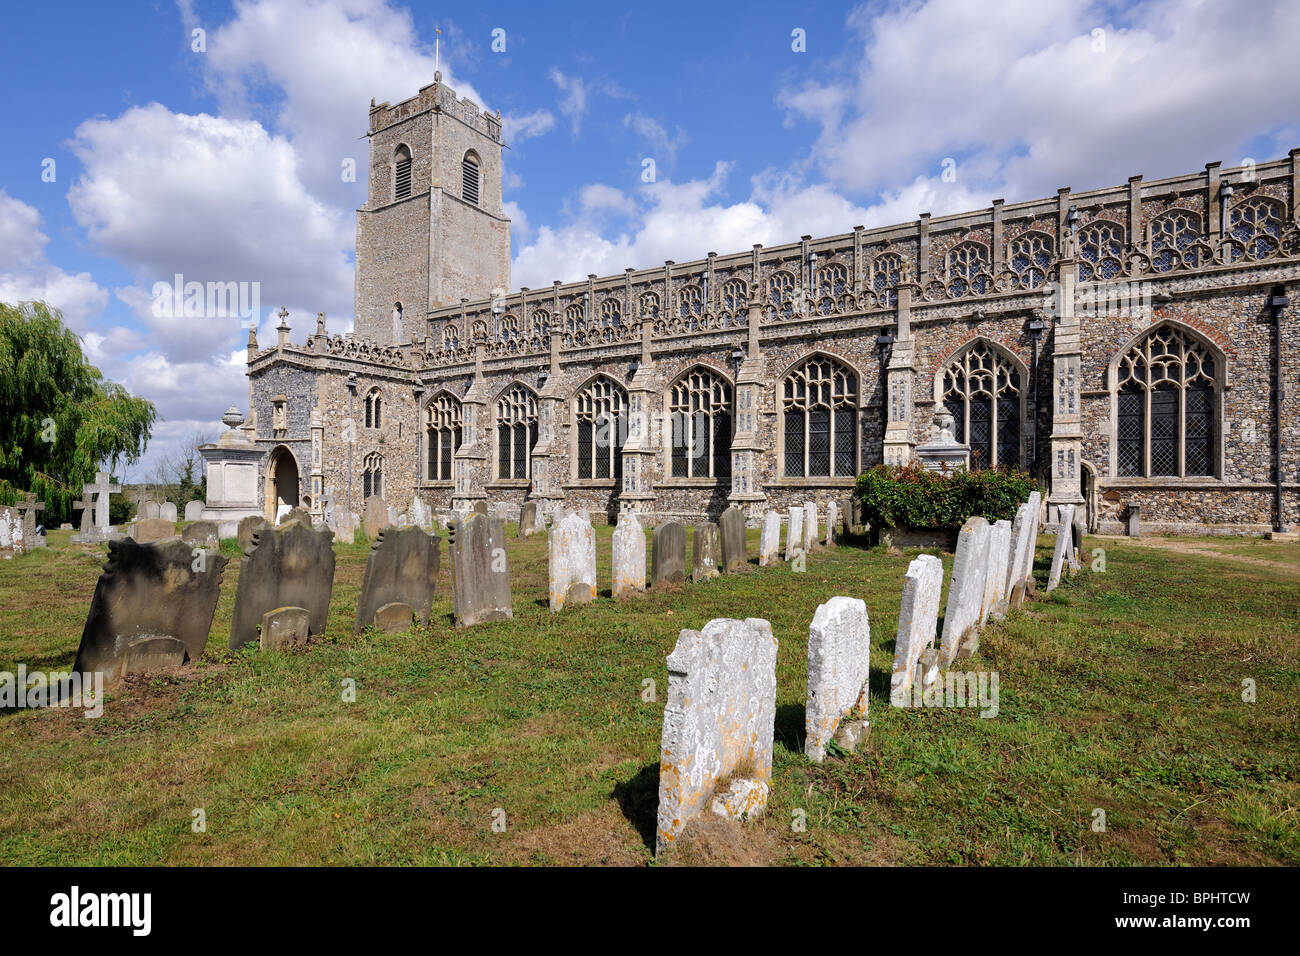 The Cathedral of the Marshes, Blythburgh, Suffolk, England - Stock Image